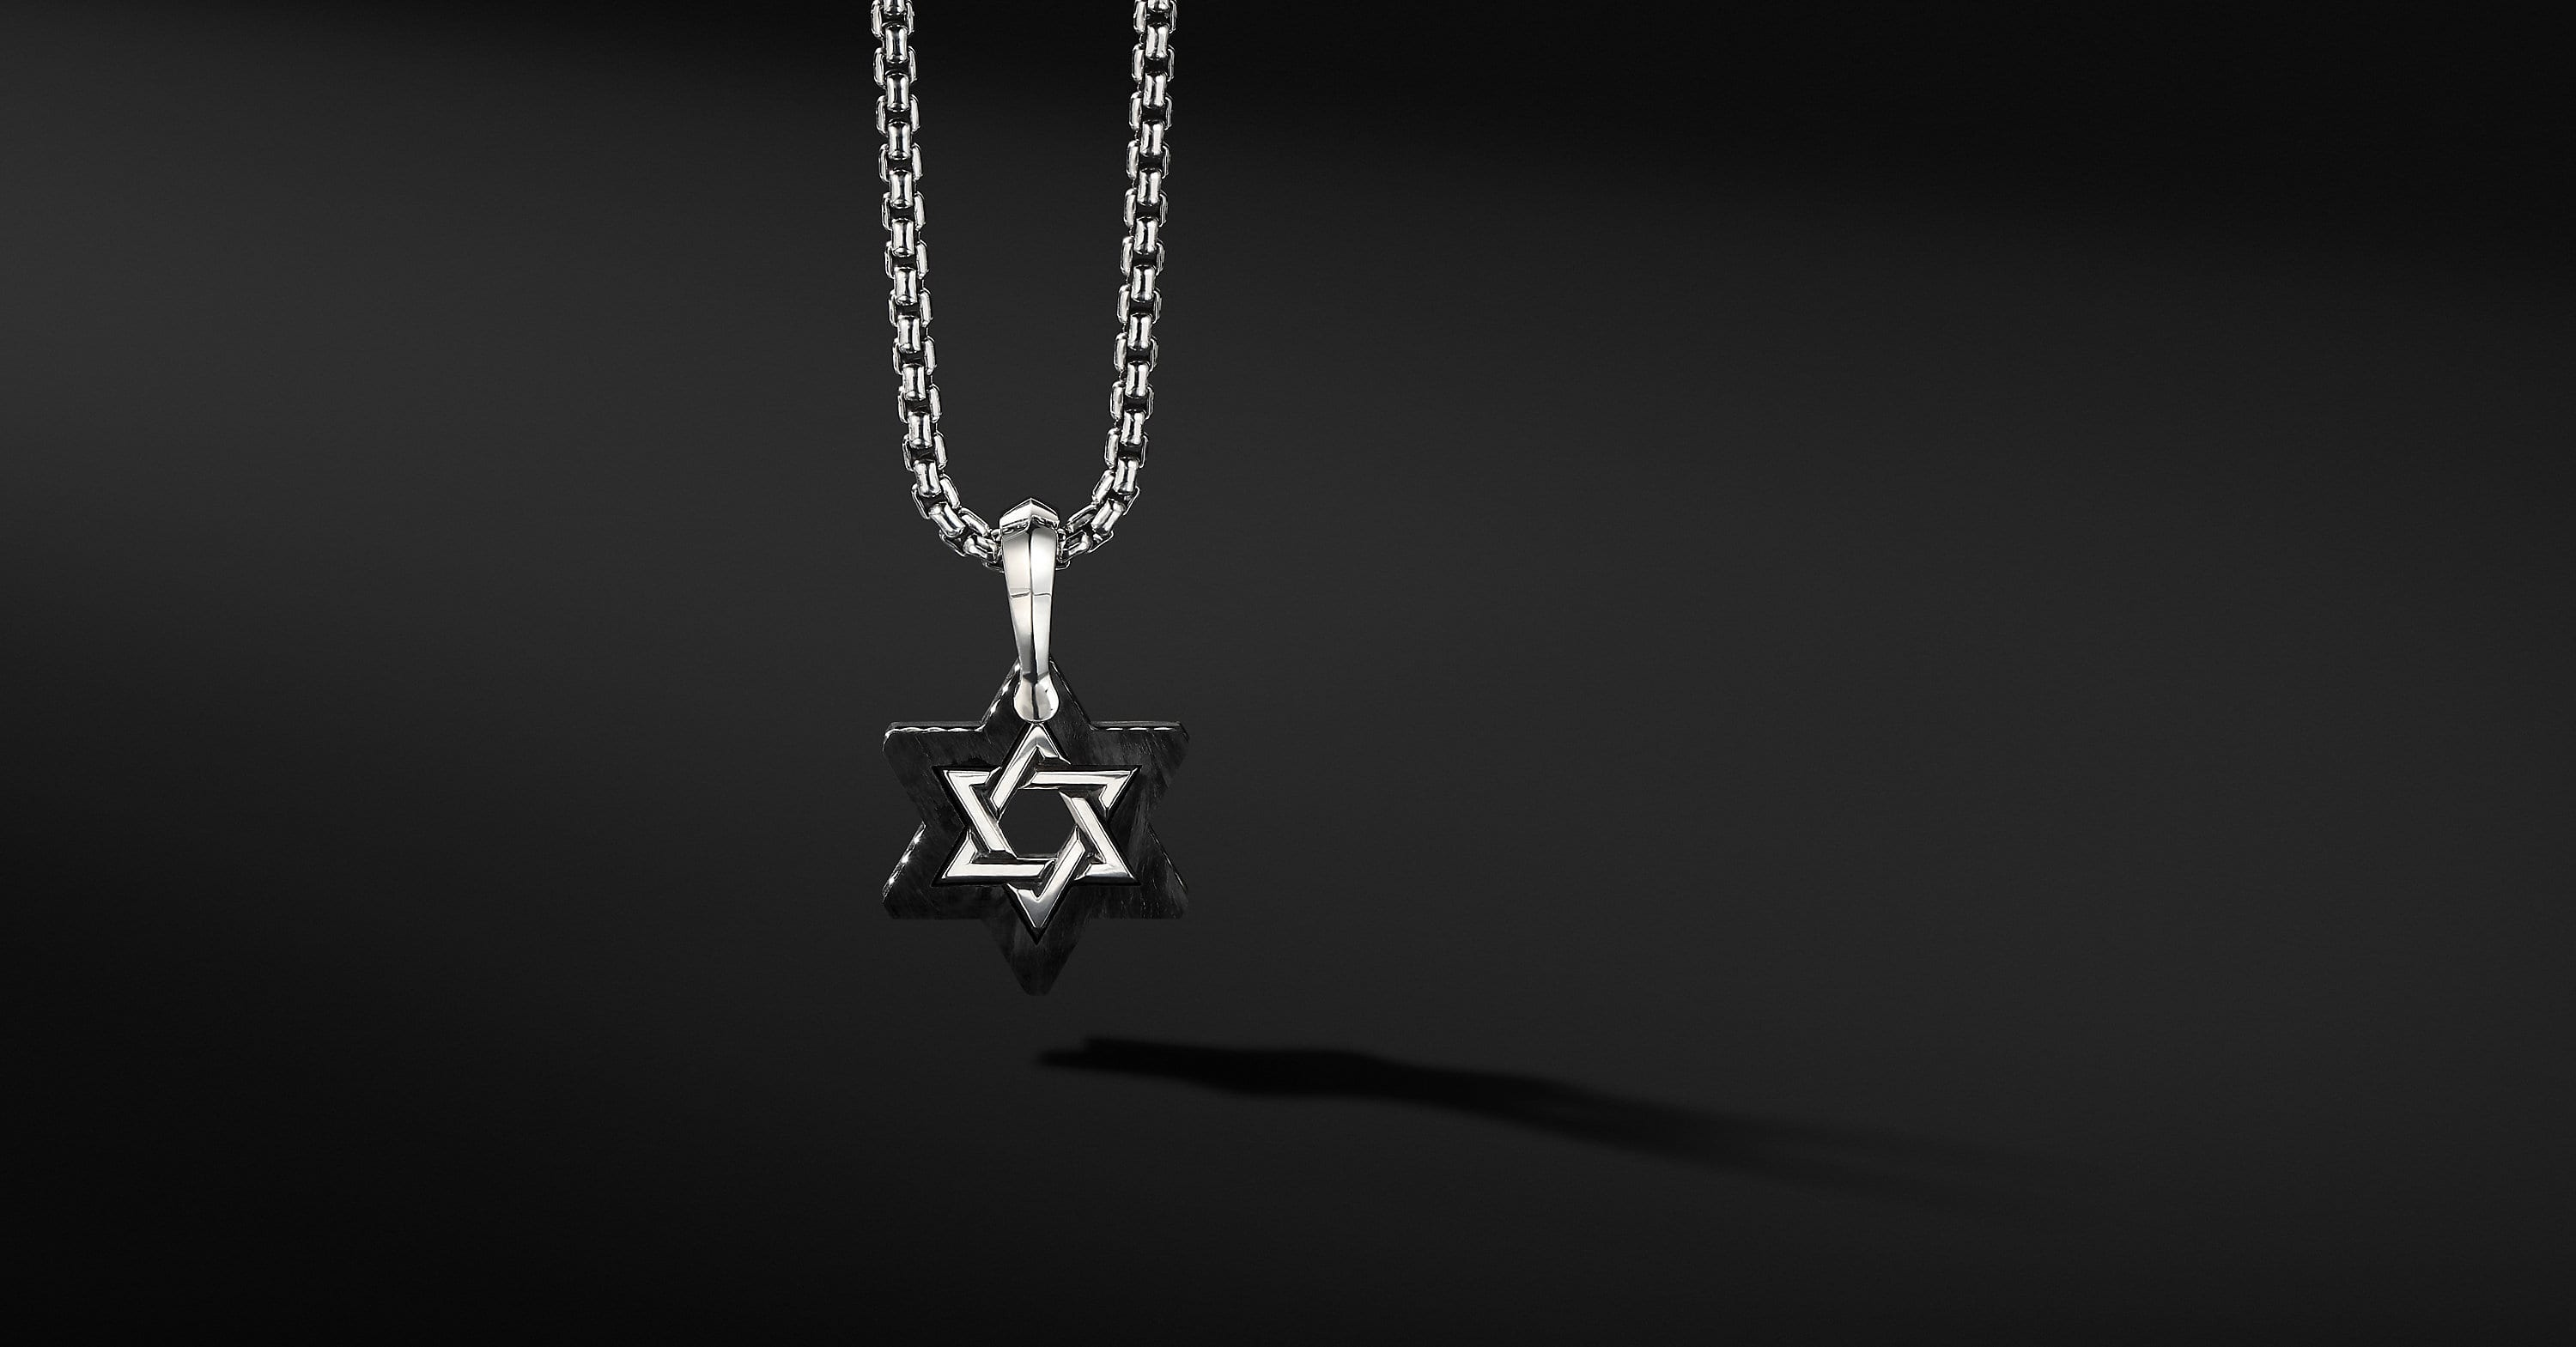 Forged Carbon Star of David Amulet